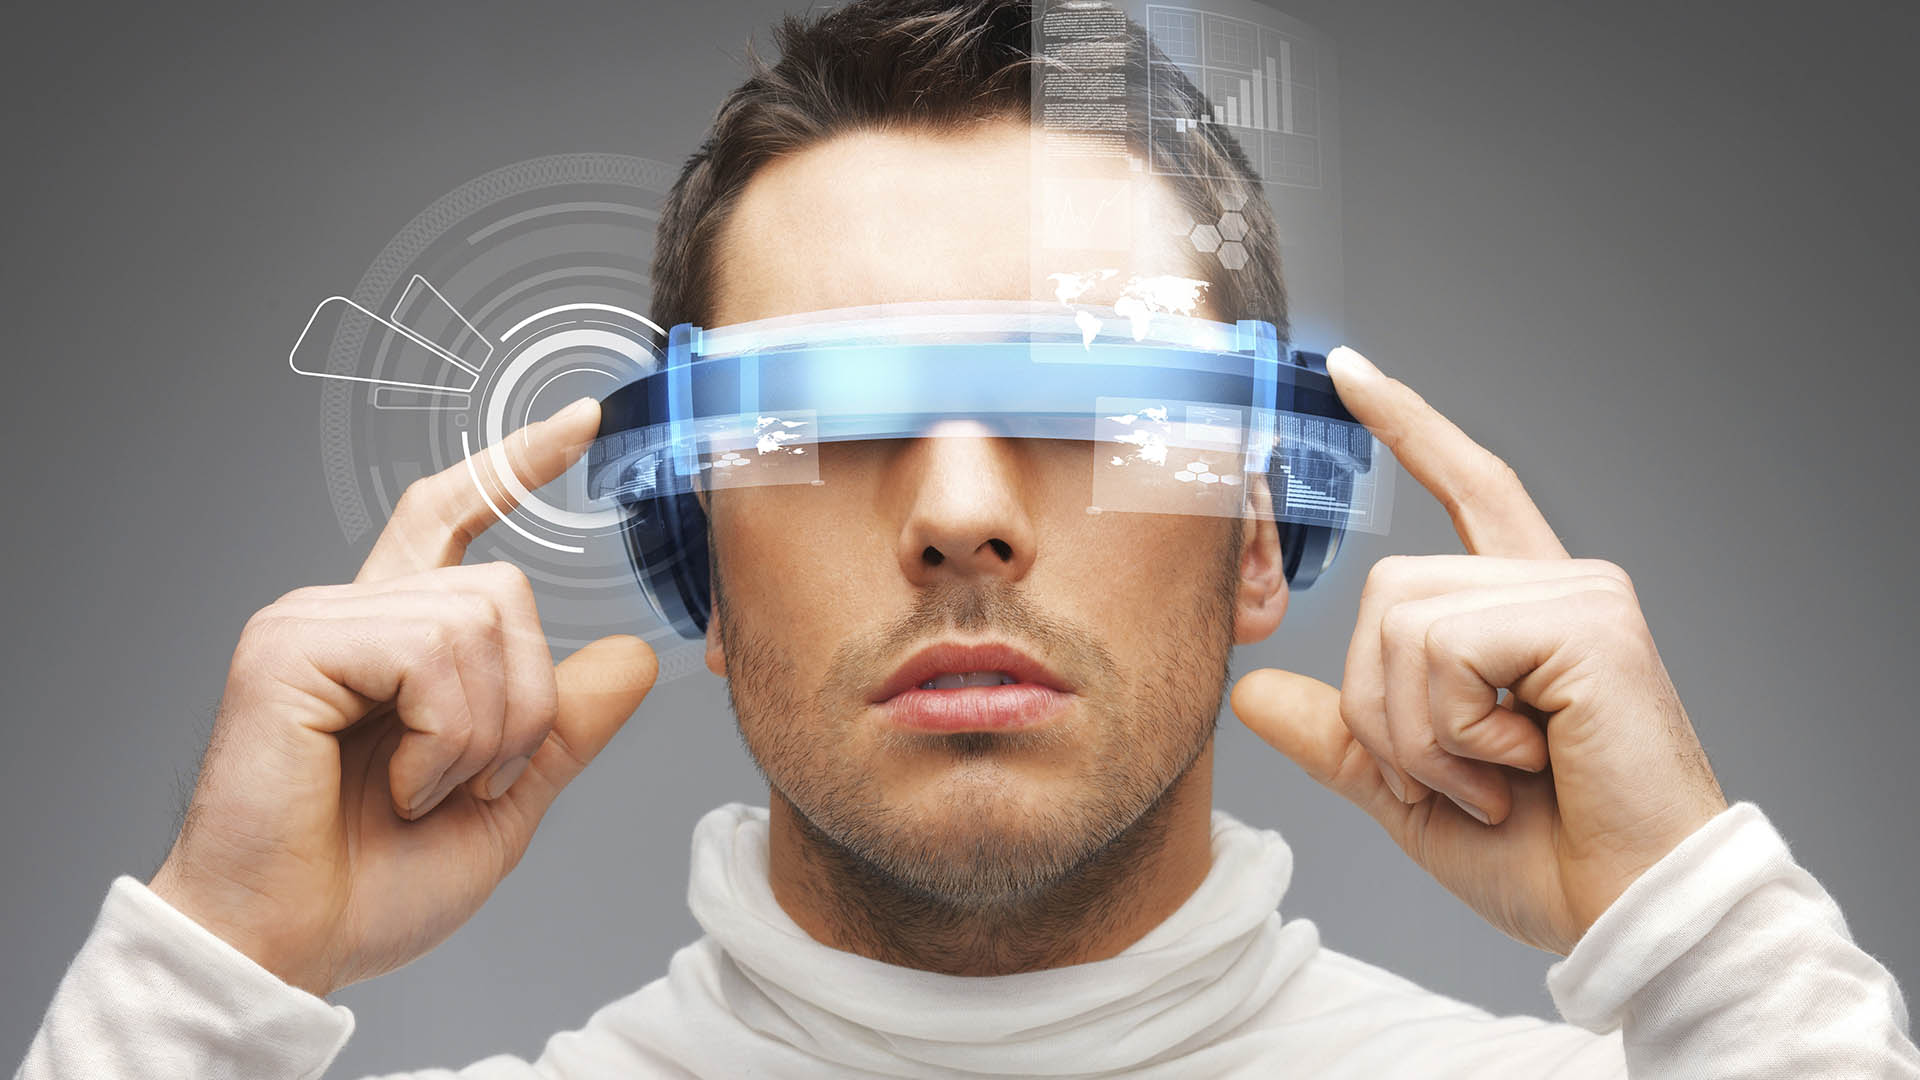 augmented reality, virtual reality, future trends, ar, vr